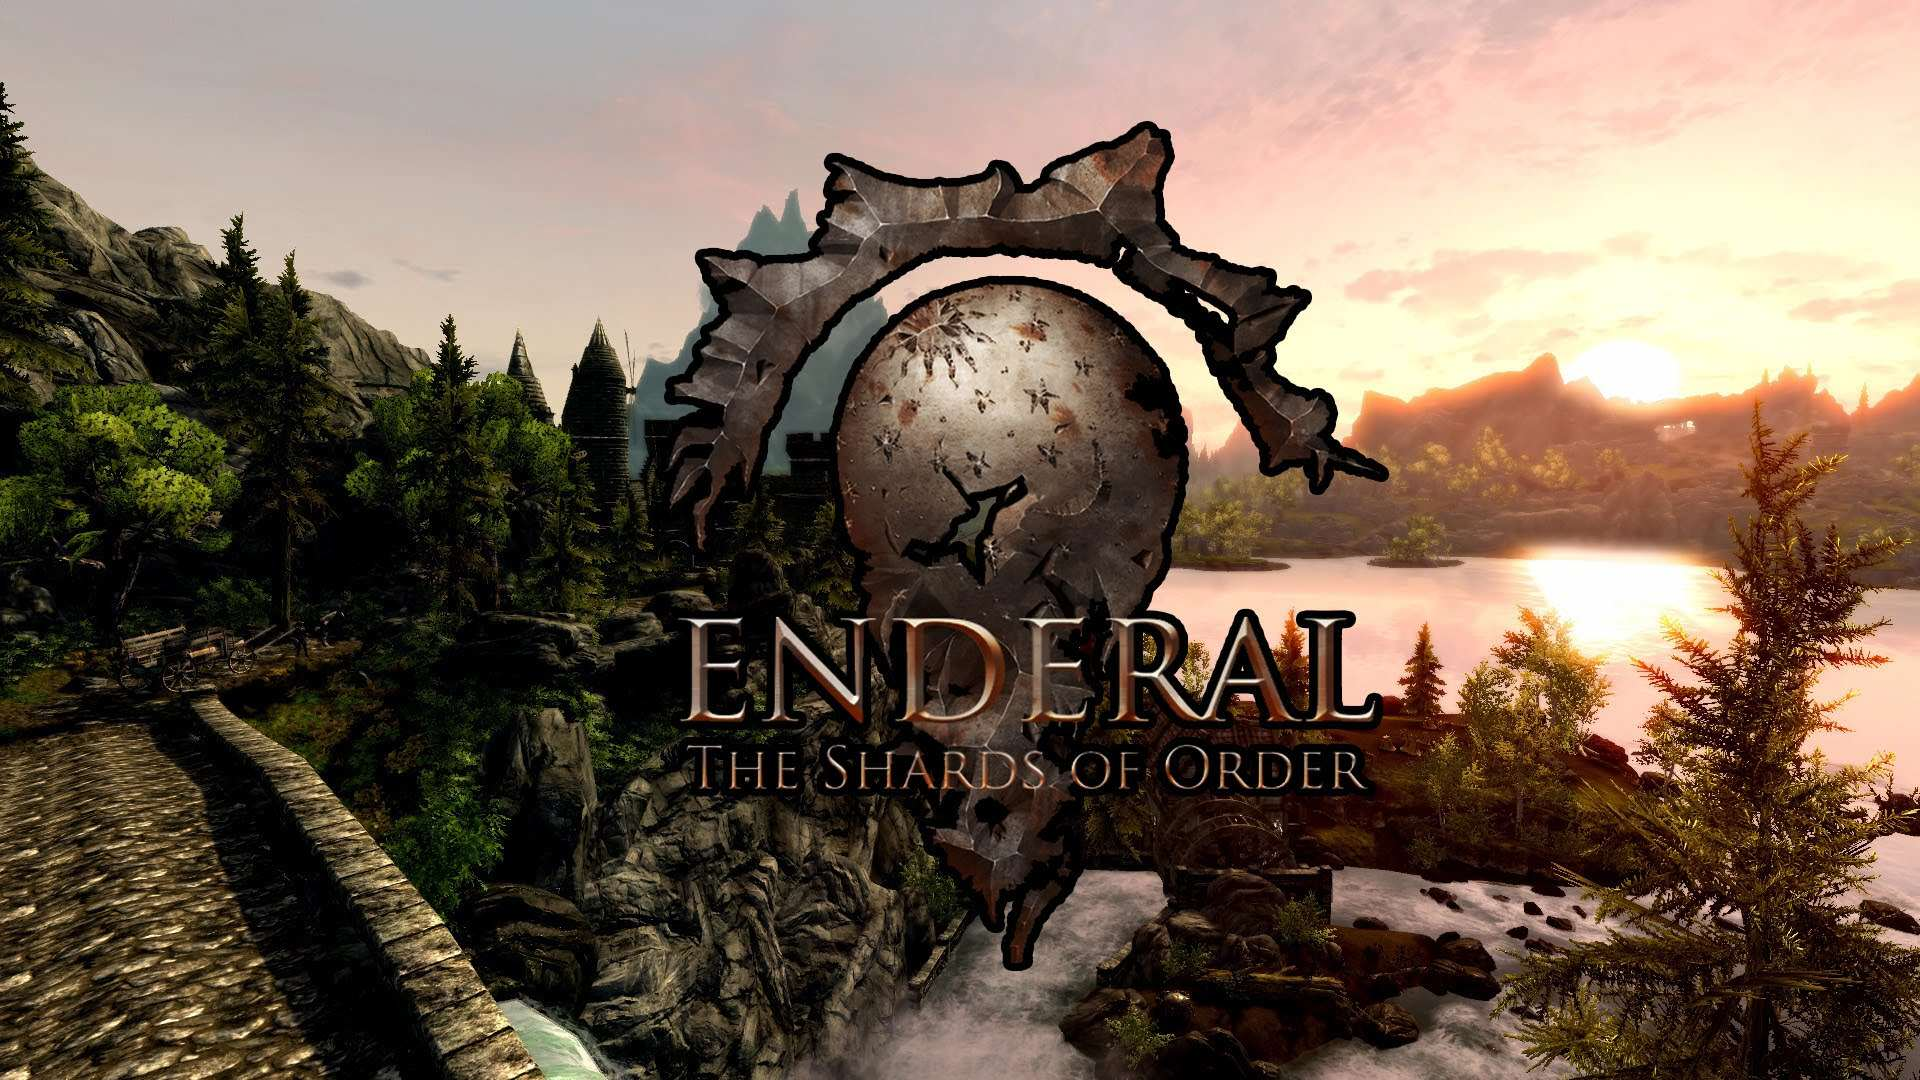 Skyrims Breathtaking Total Conversion Mod, Enderal, Is Now Available maxresdefault 1 11